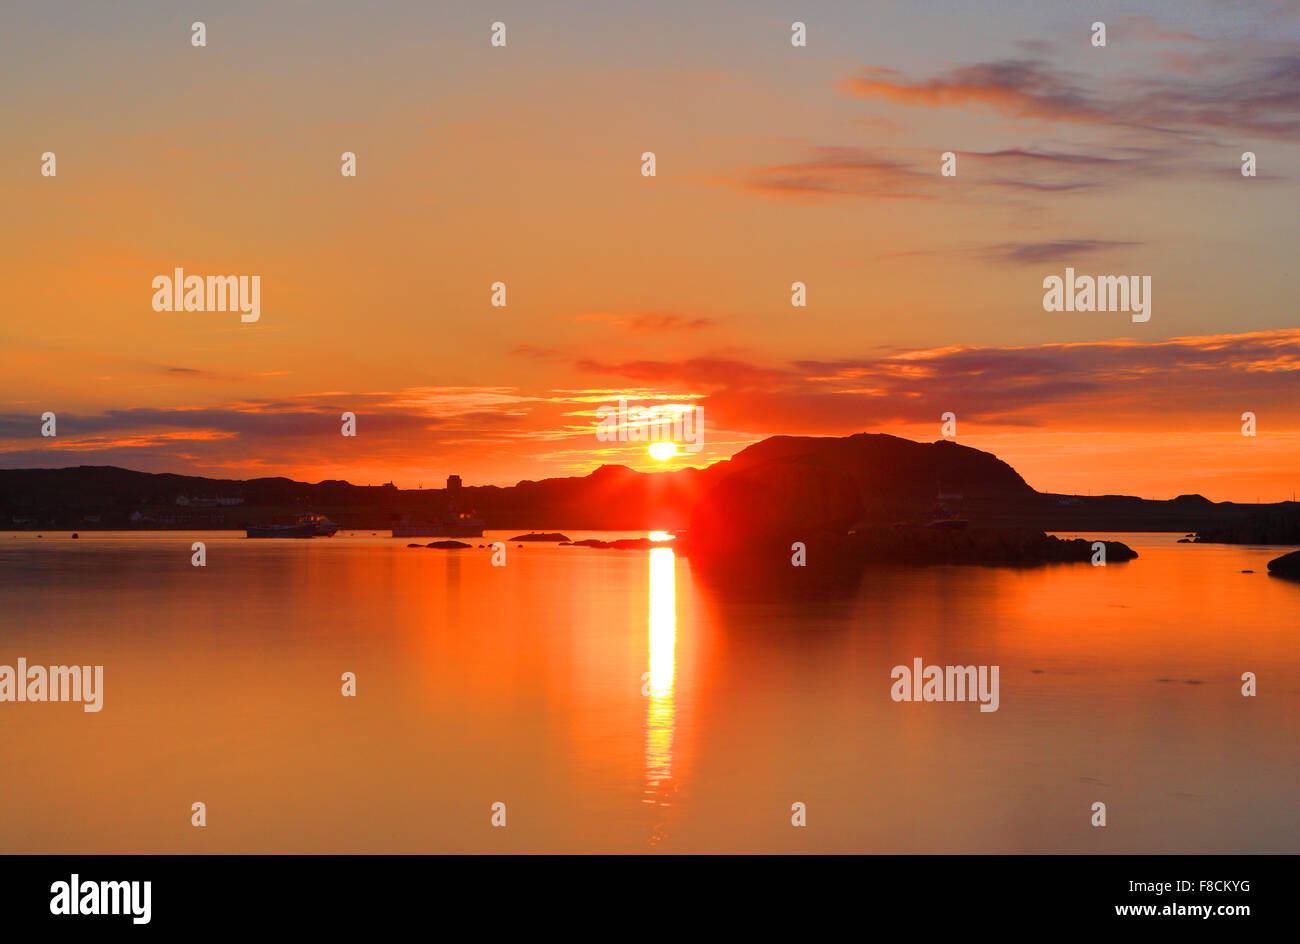 Sunset over Iona in the Inner Hebrides of Scotland - Stock Image